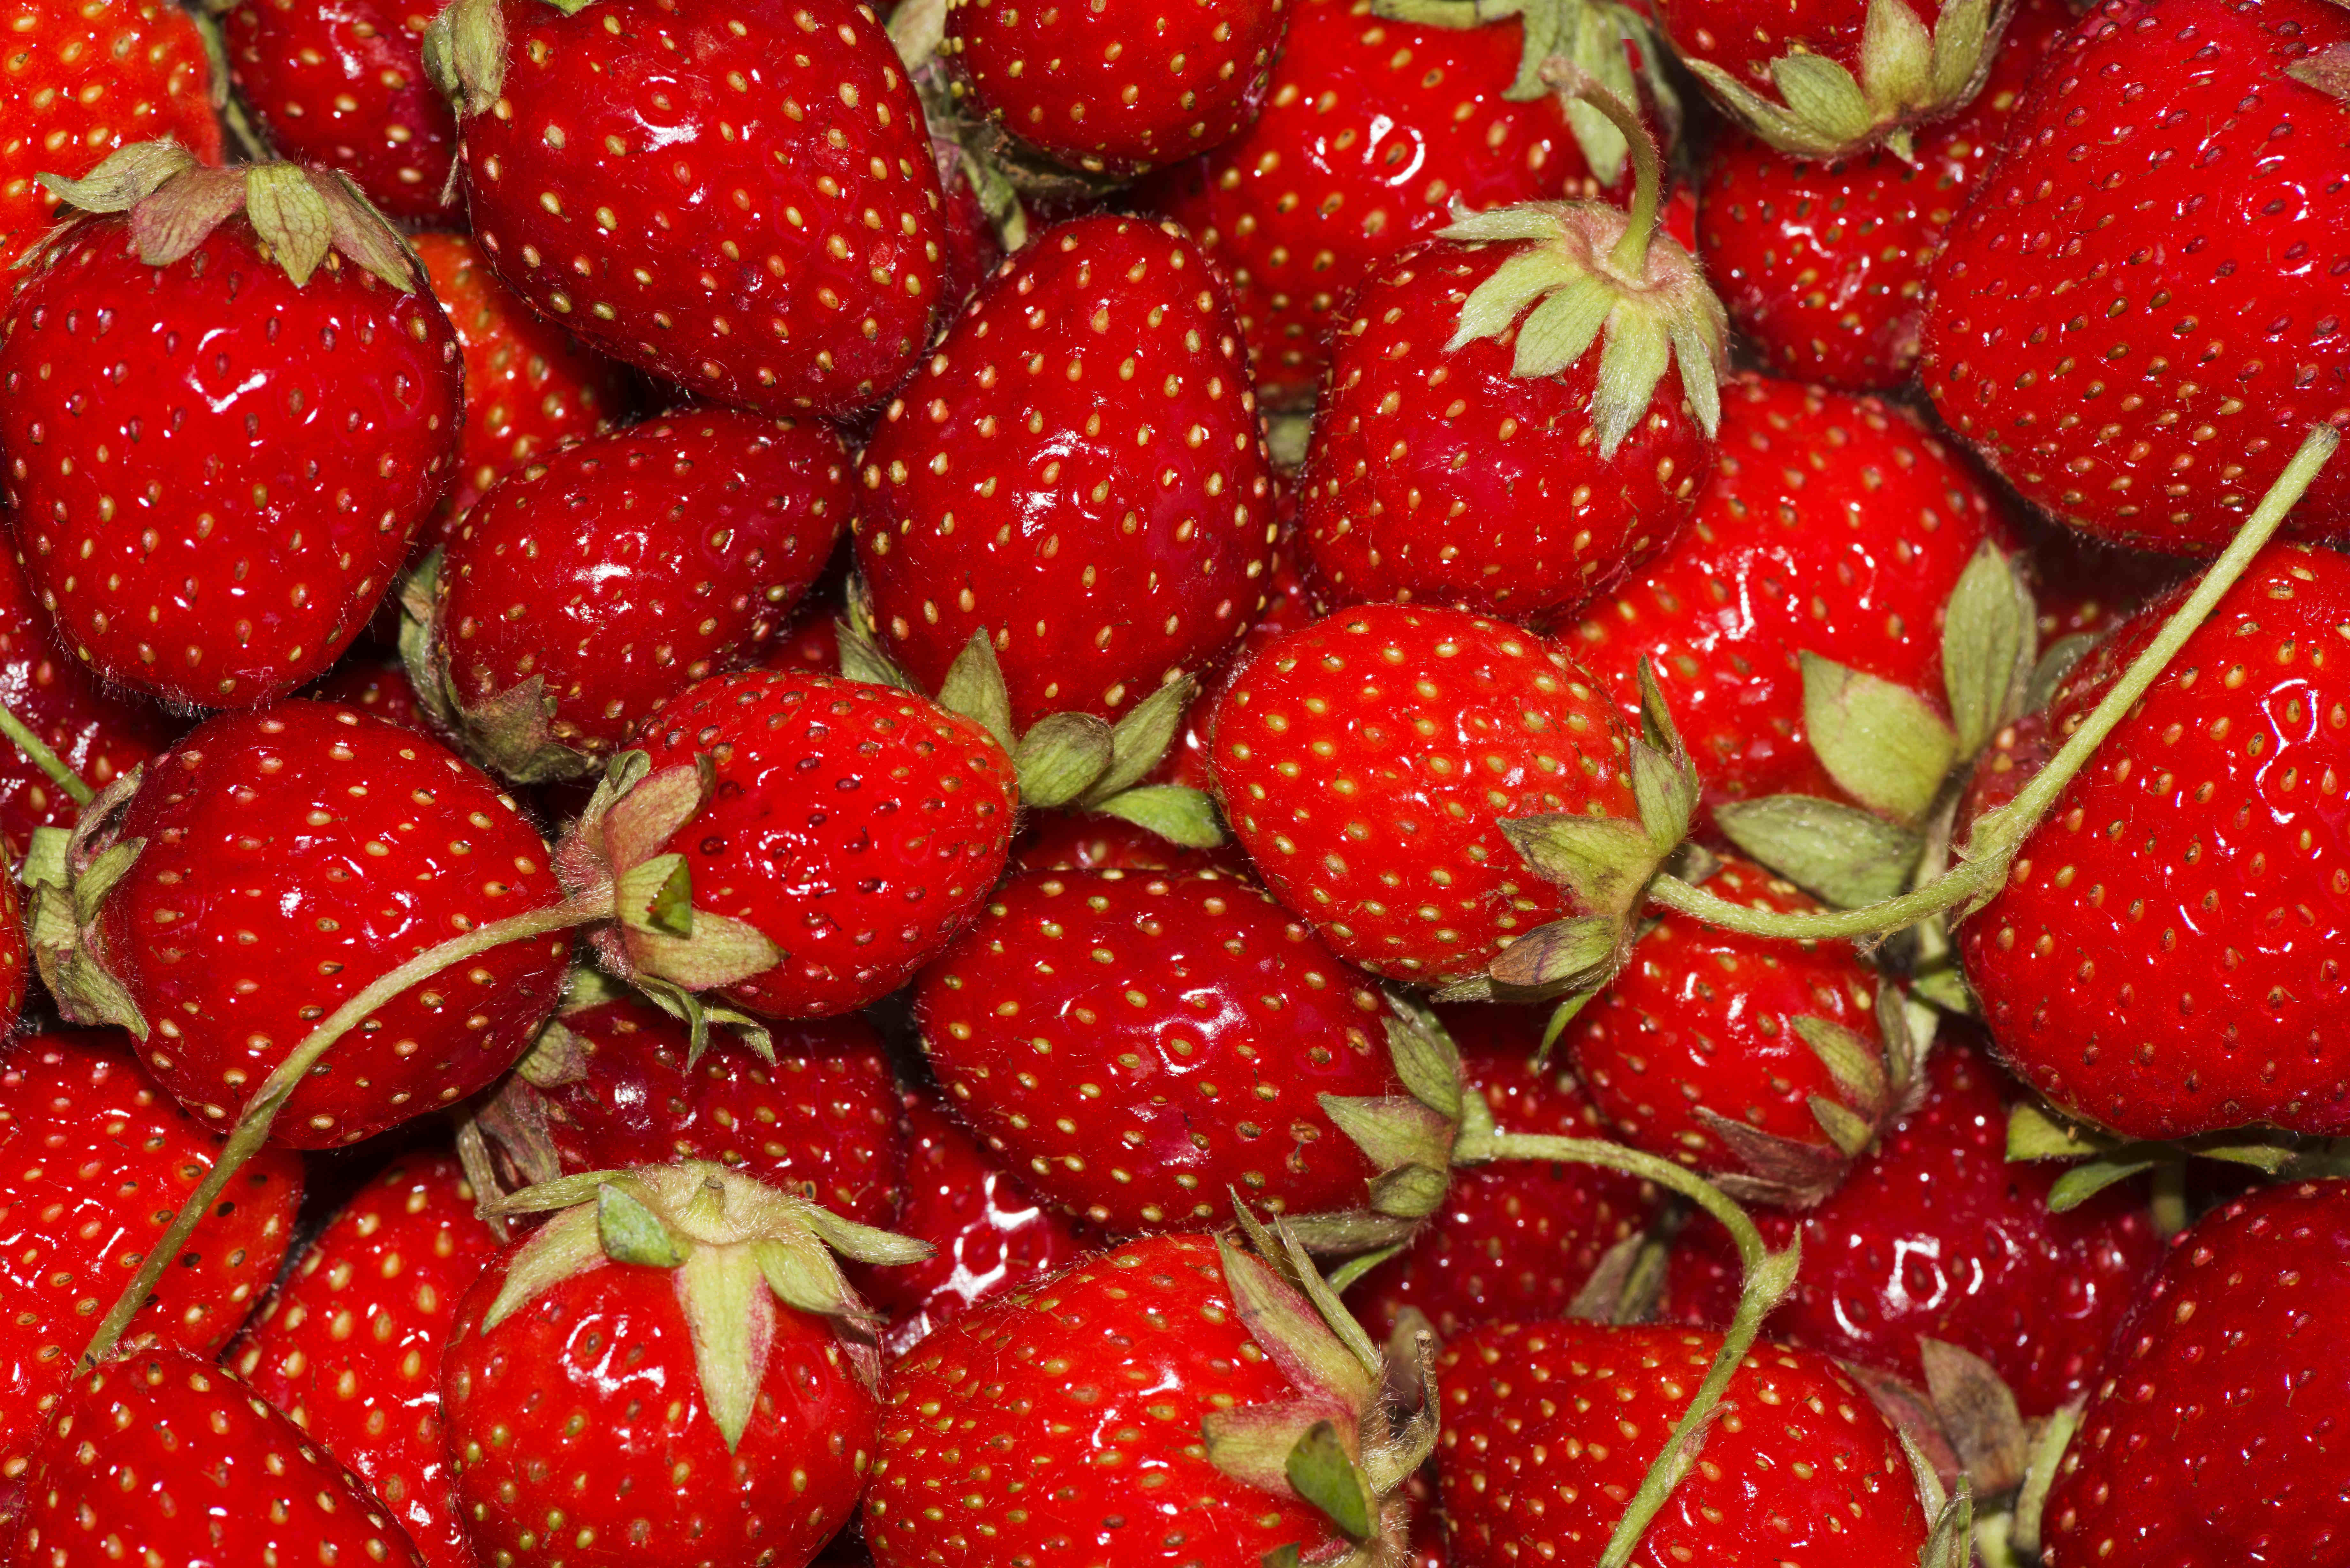 There were over 100 reports of sewing needles being found inside strawberries. Credit: PA